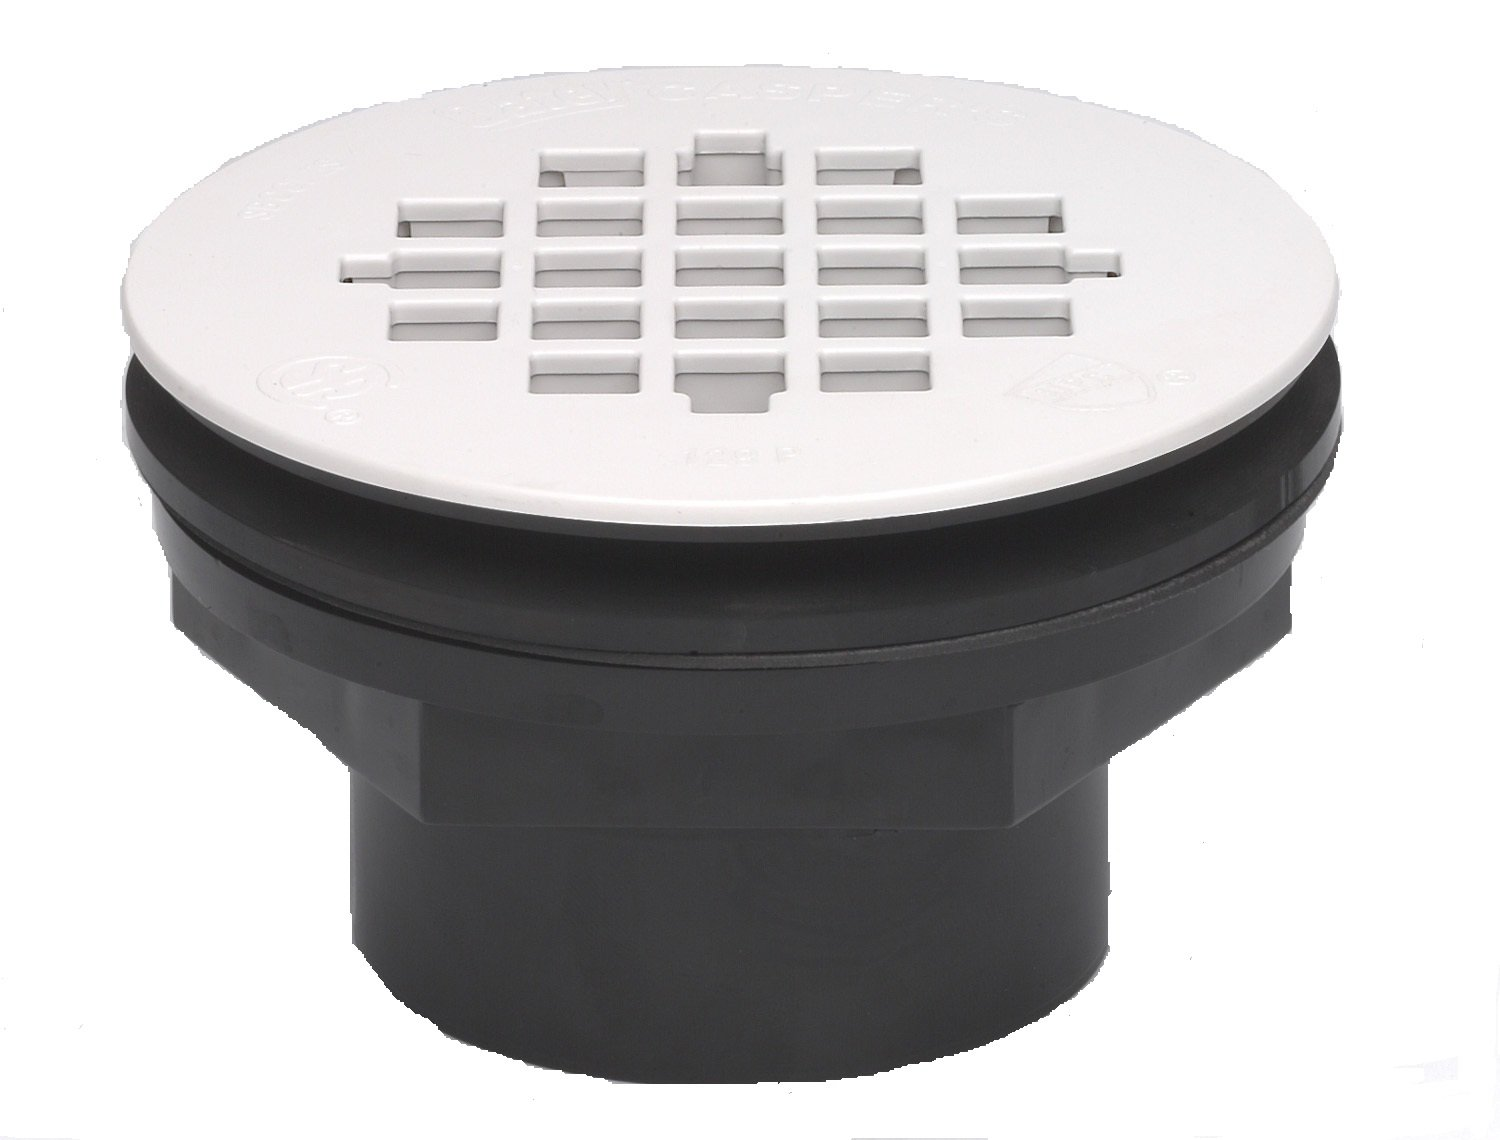 Oatey 42089 101 PS PVC-Solvent Weld Shower Drain with Plastic Strainer 2-Inch